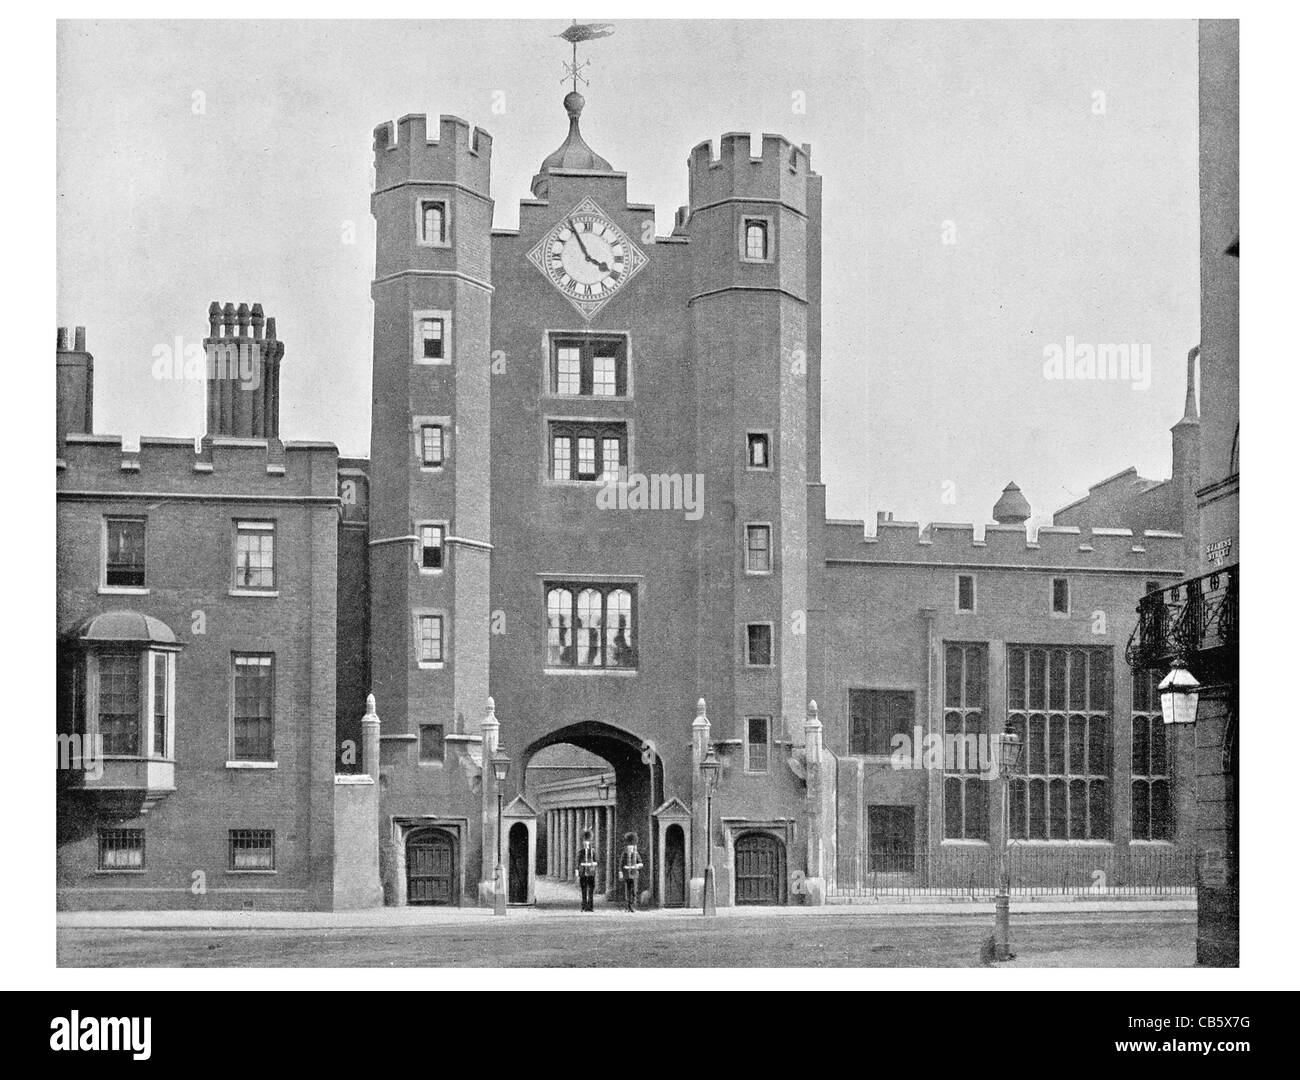 St. James's Palace Pall Mall red brick Tudor style London England Royal residence - Stock Image